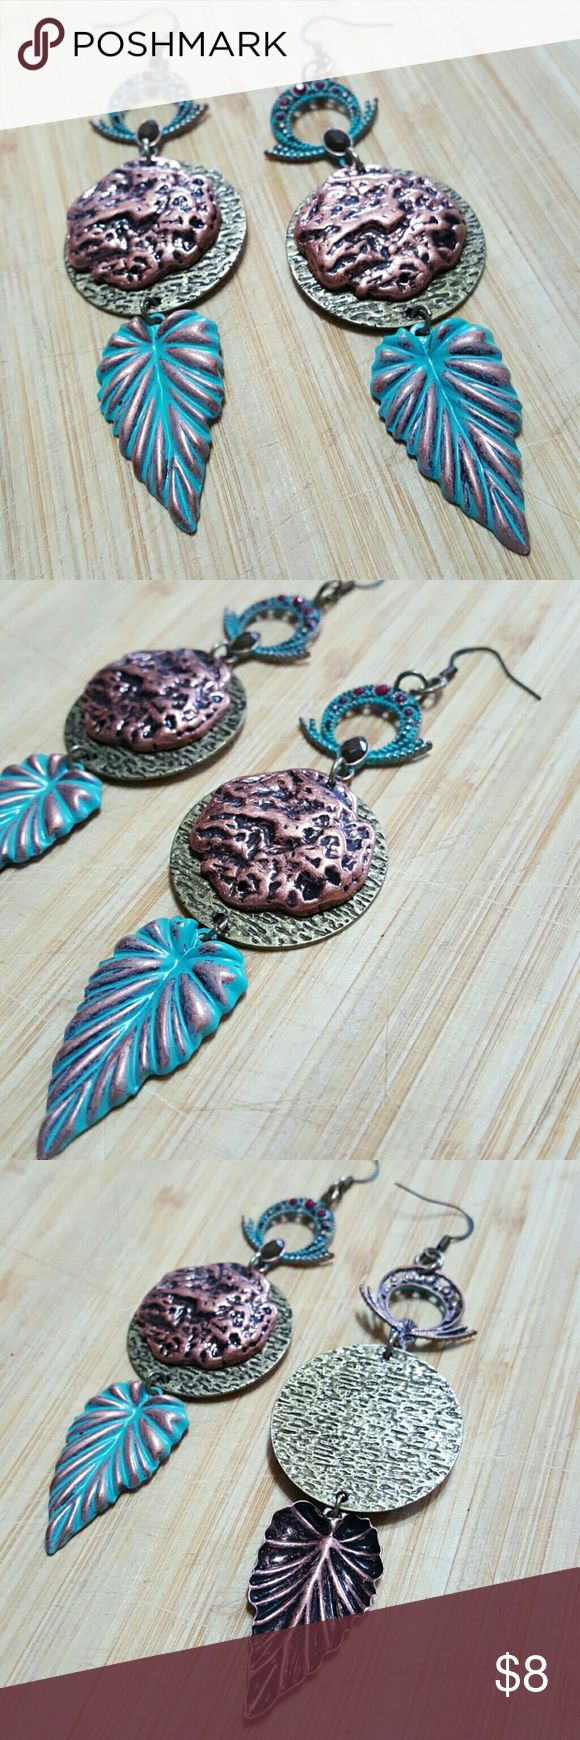 Beautiful Earrings Love!  Feel free to ask any questions before purchasing.   Thanks for shopping my closet! Jewelry Earrings